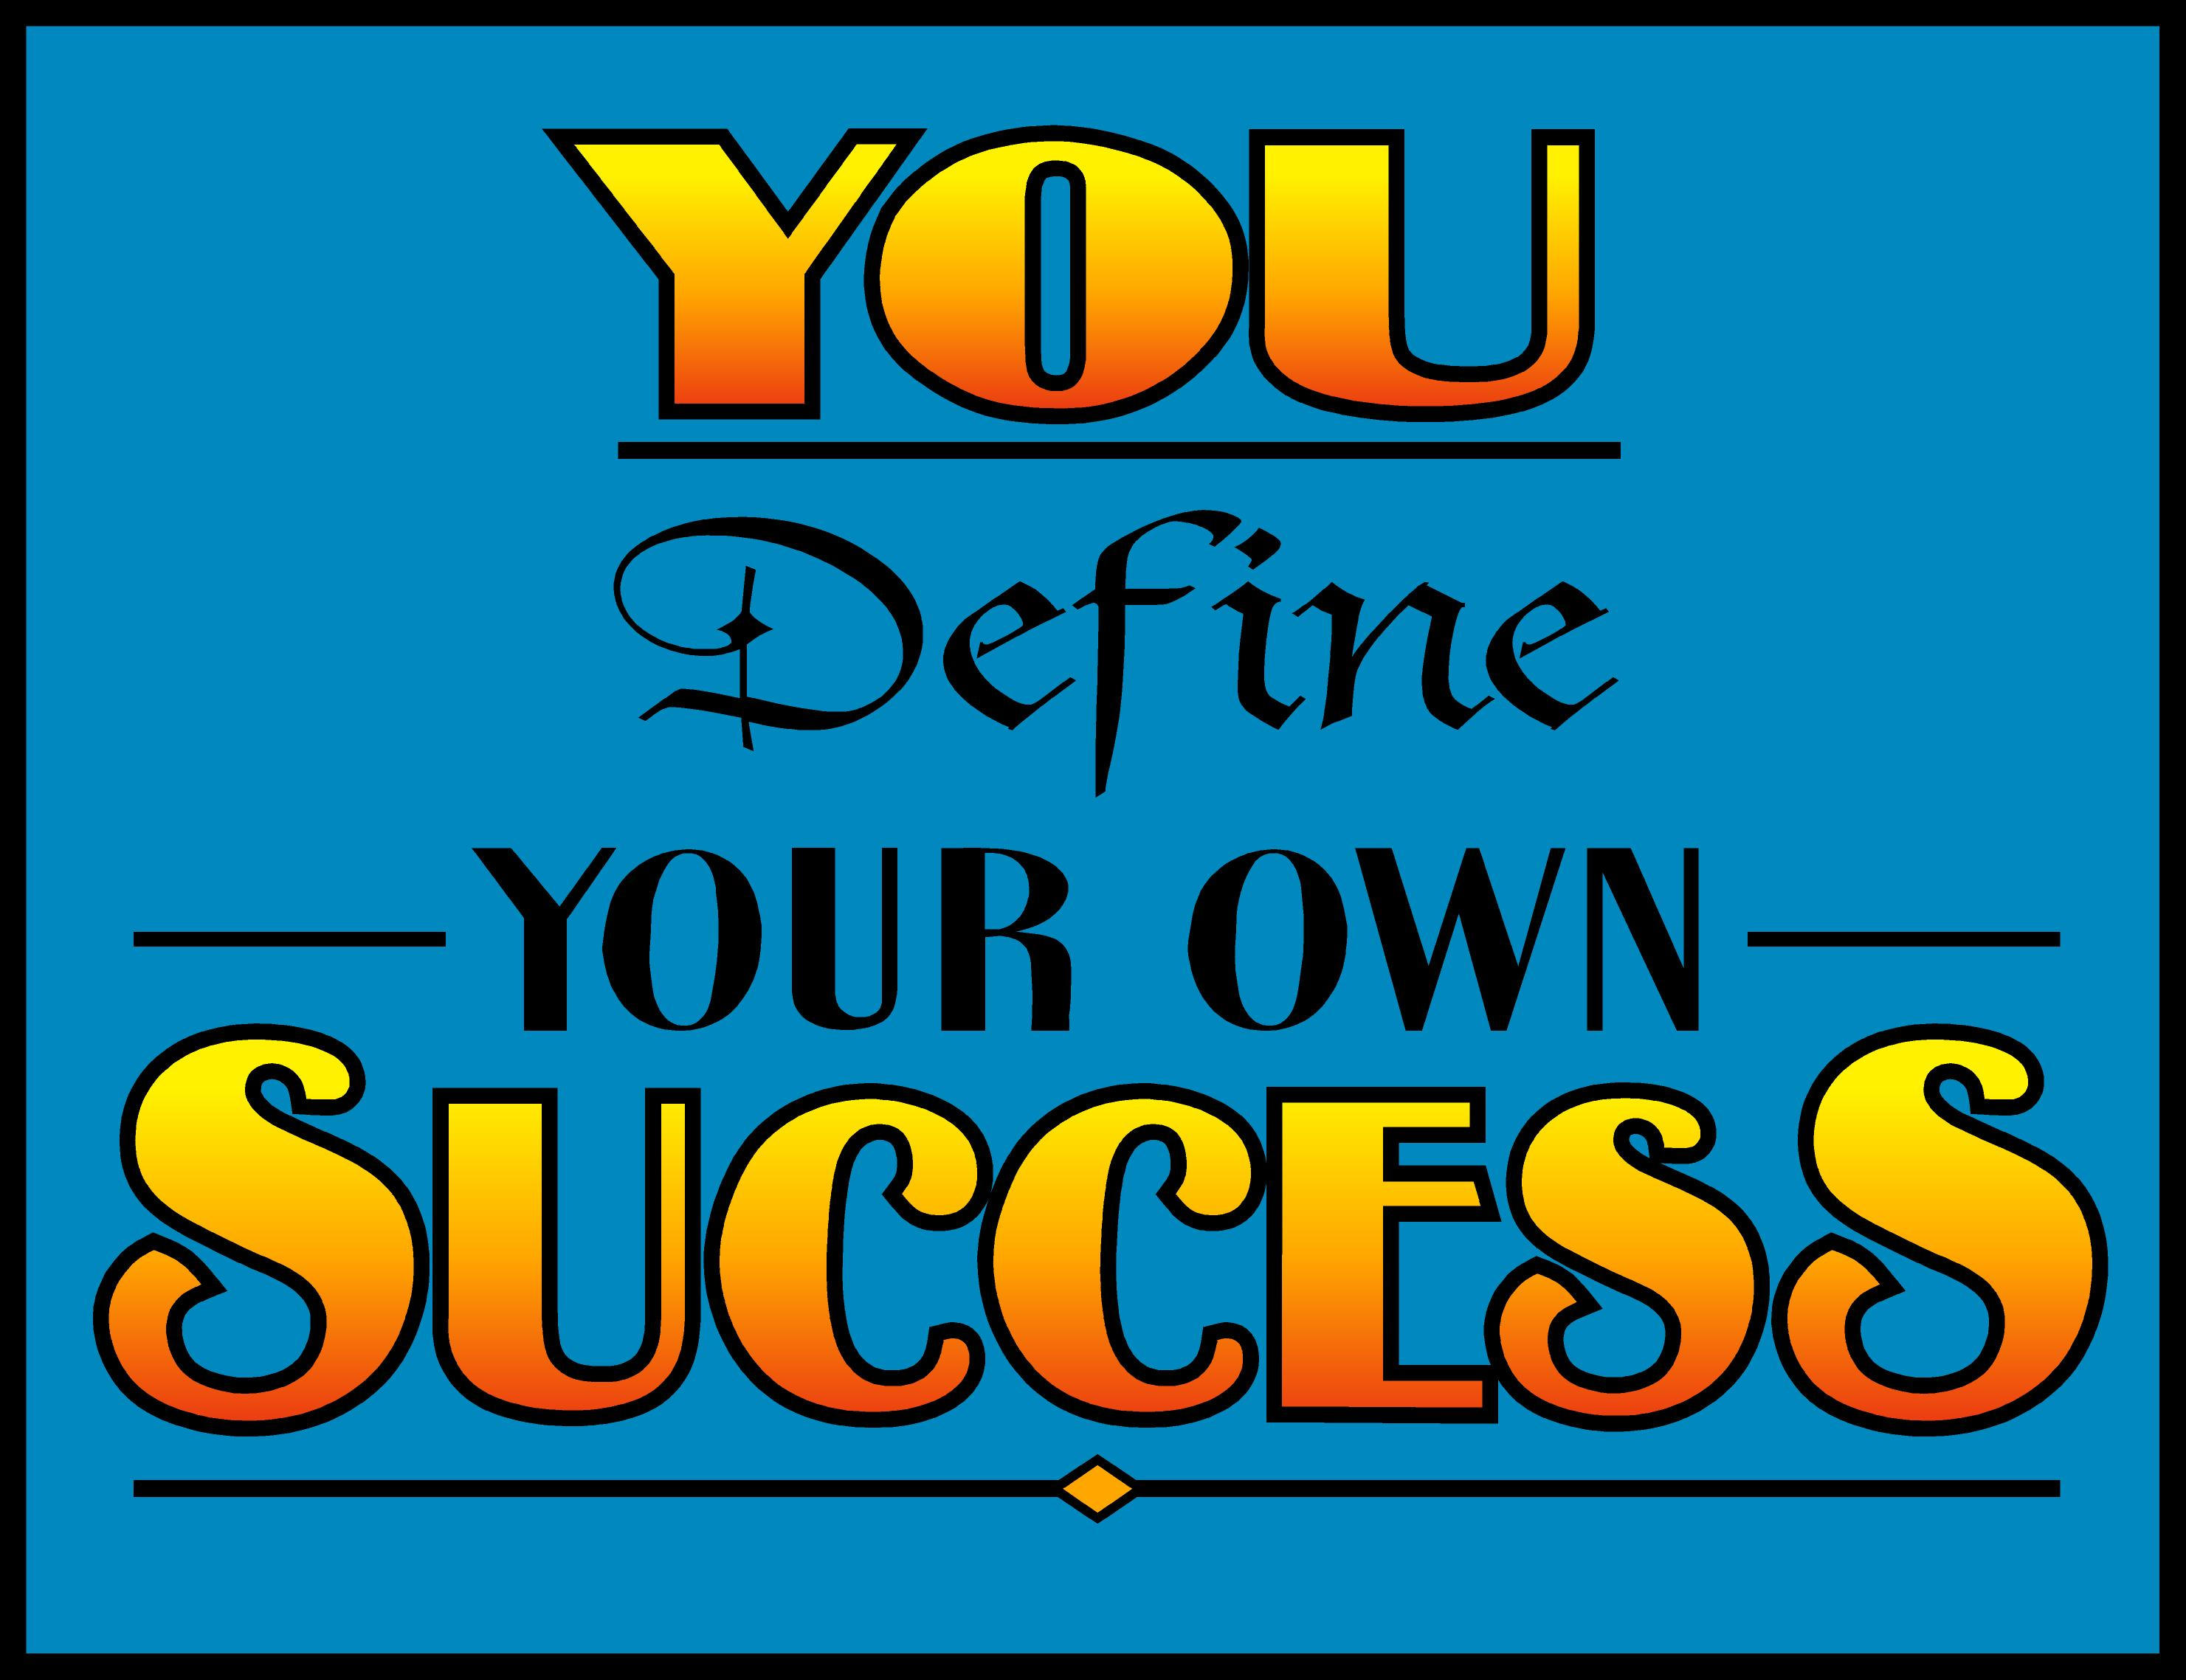 your own success deananddena